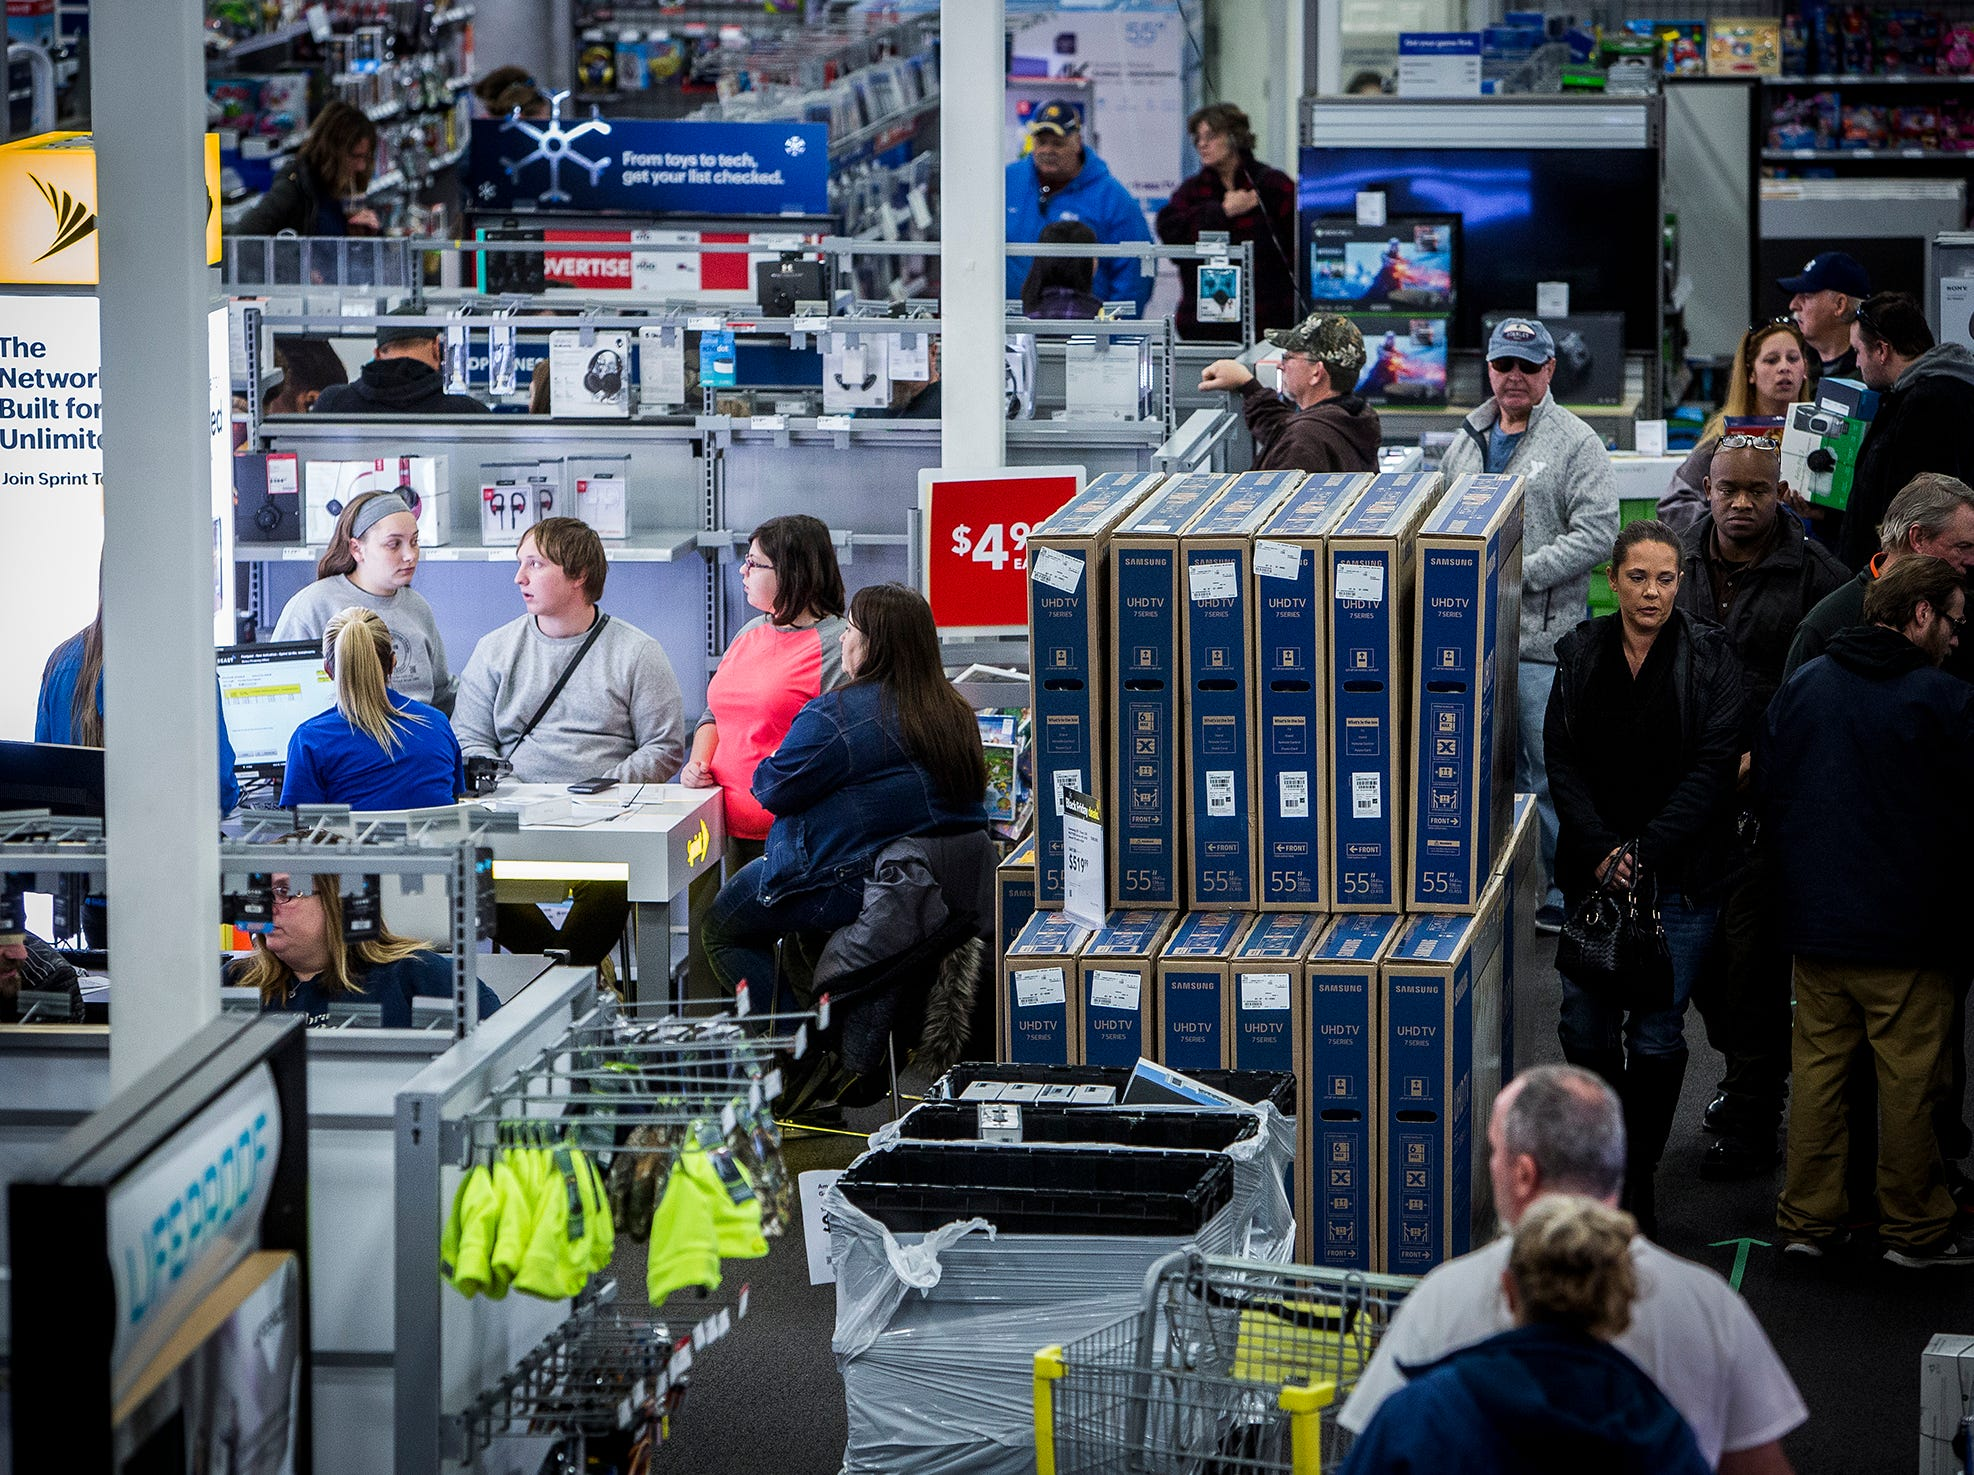 Customers fill the aisles at Best Buy during Black Friday.